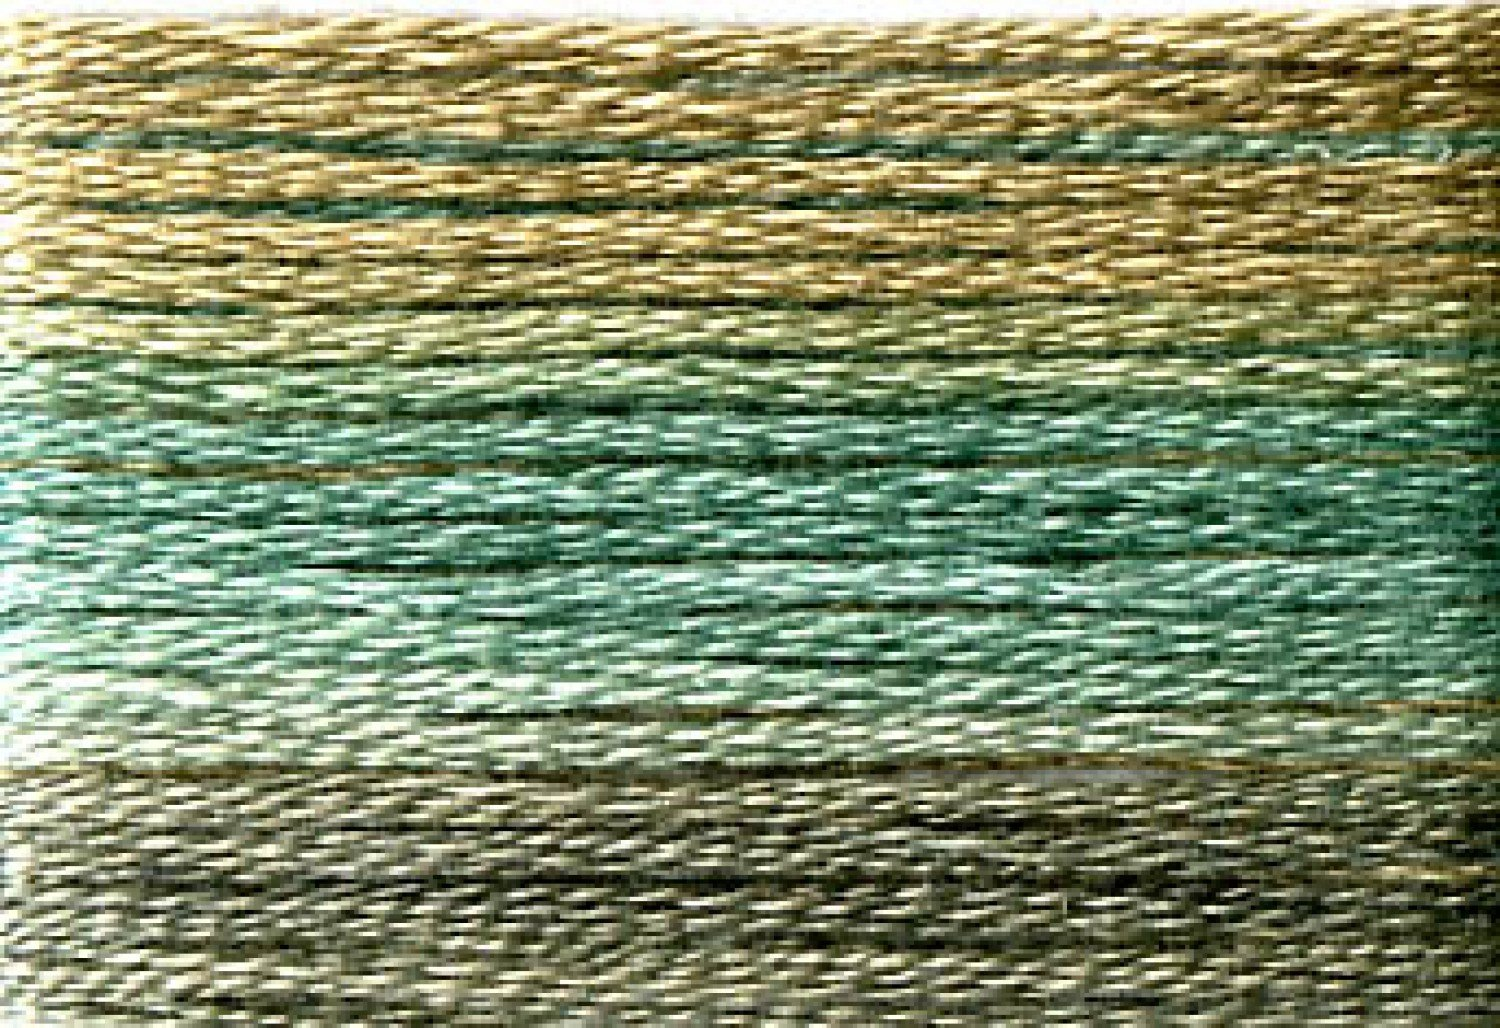 8049 Cosmo Seasons Variegated Embroidery Floss Blues/Browns